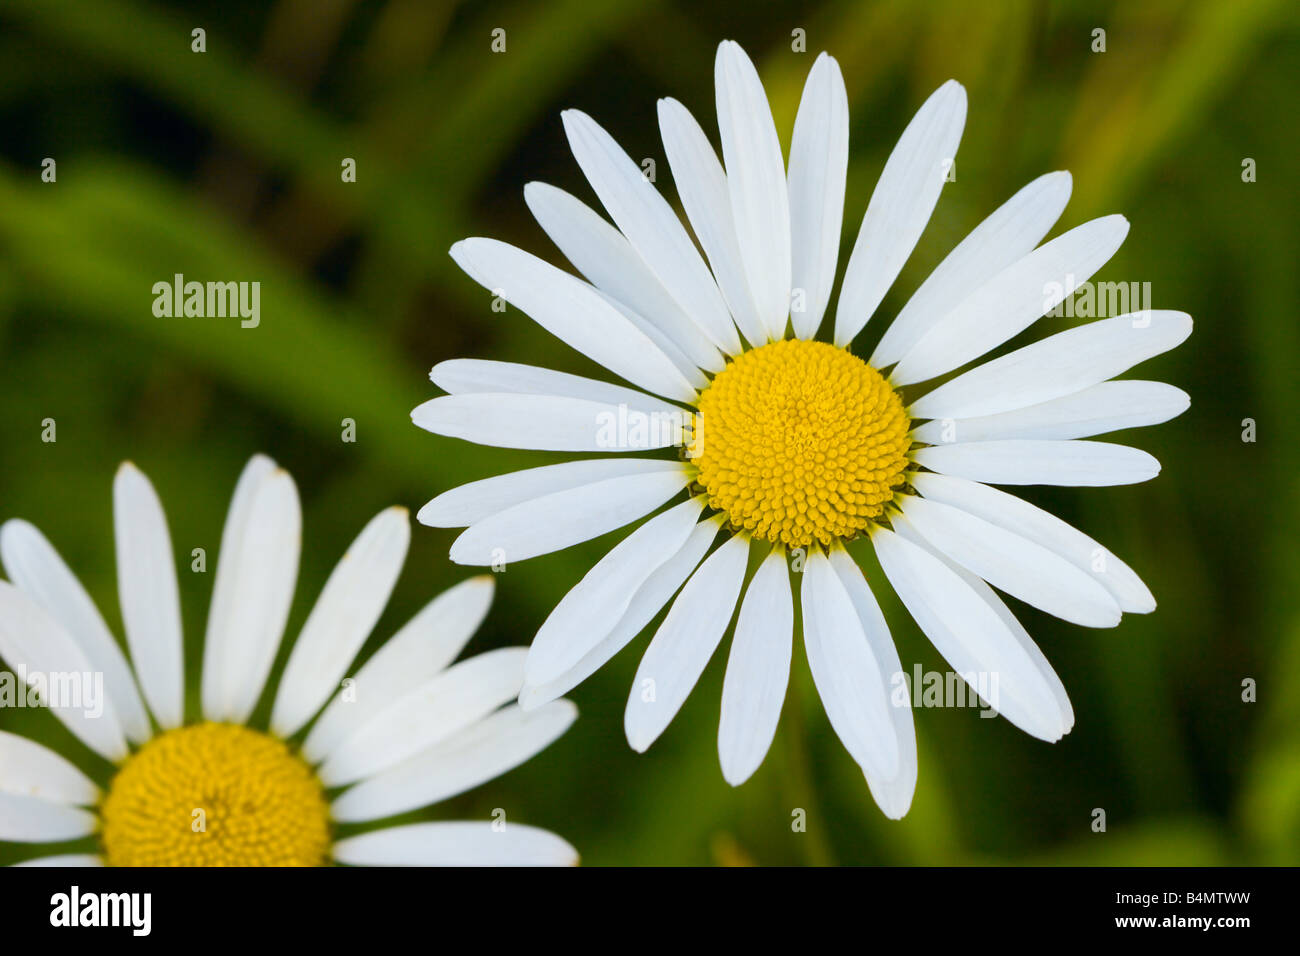 Two camomiles close up photo. Focus on right camomile. - Stock Image